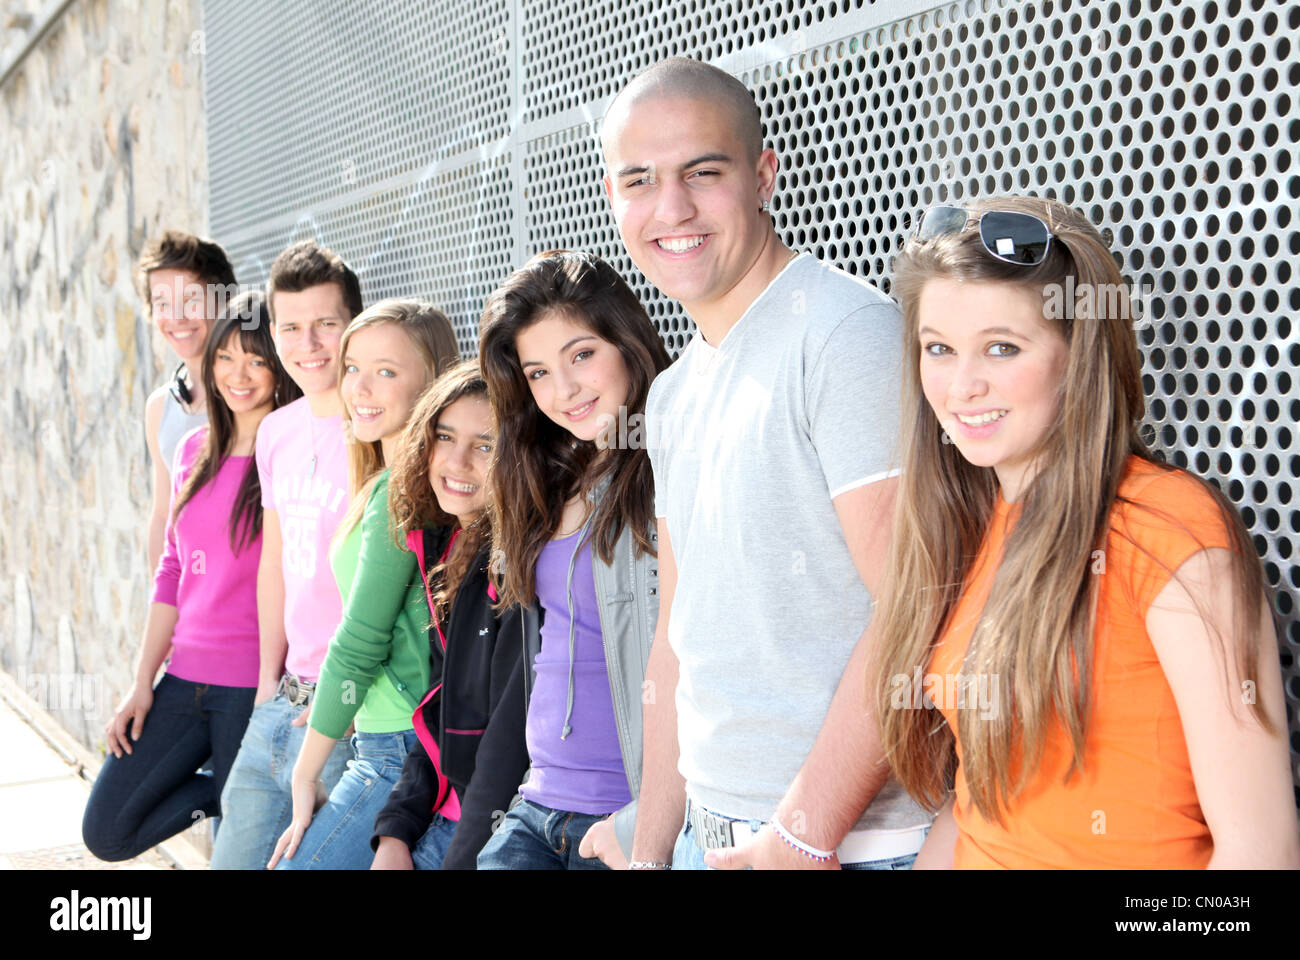 diverse group of students or teens - Stock Image